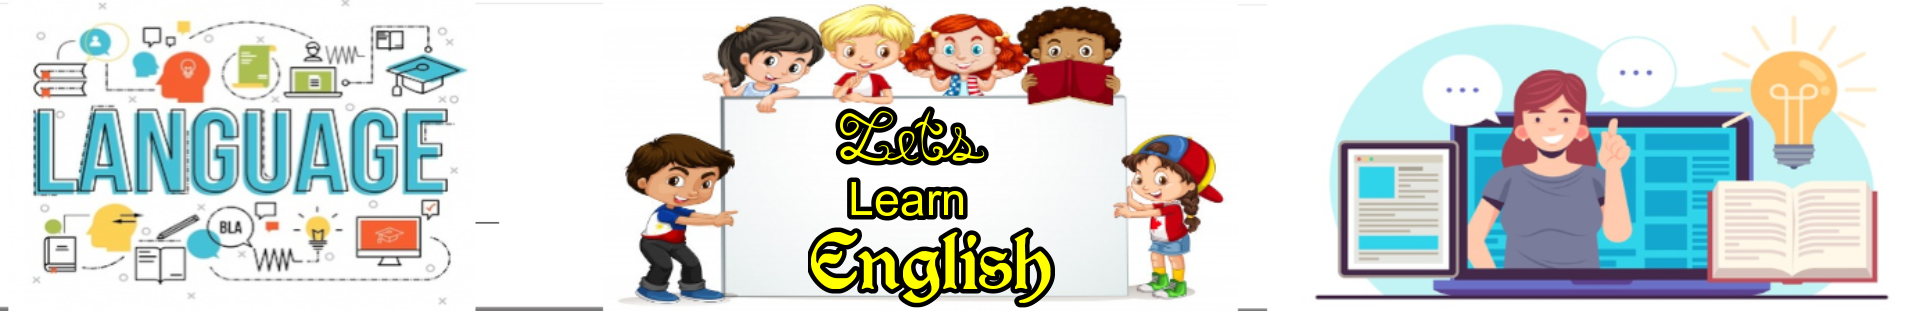 lets-learn-english.com